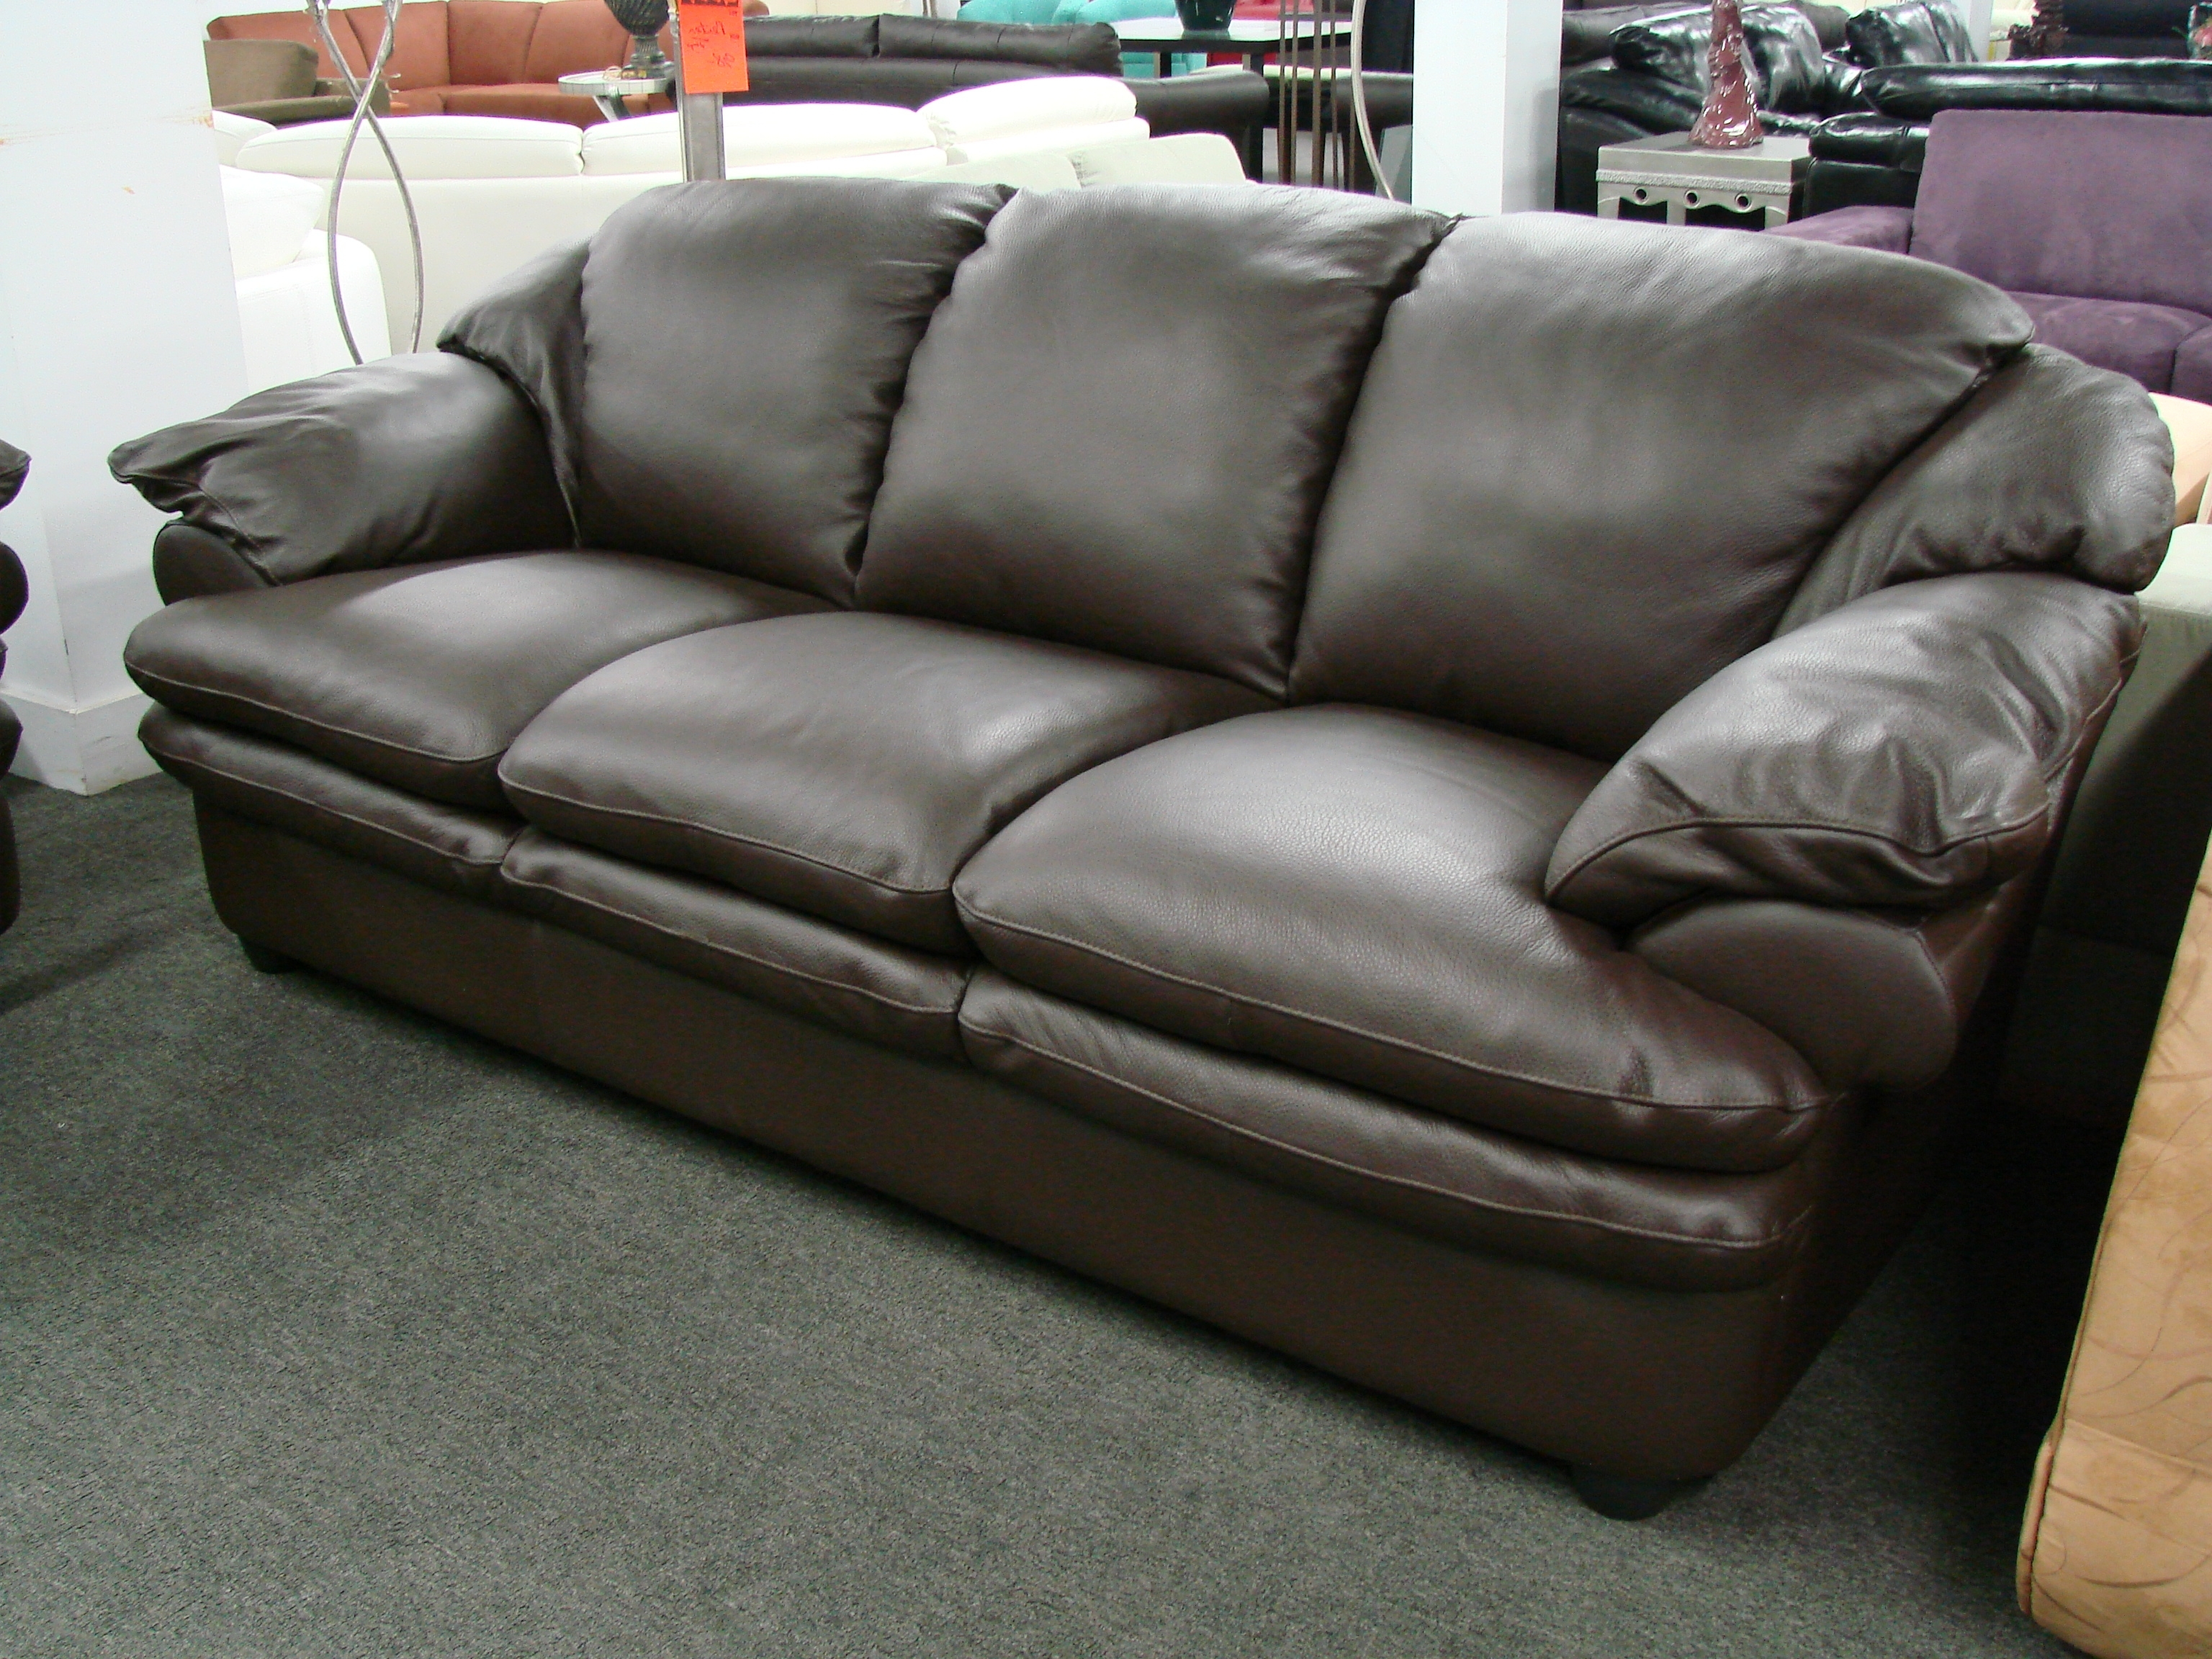 Famous Ottawa Sale Sectional Sofas Within Leather Sectional Sofa With Recliners Sofas Ottawa For Sale Couch (View 2 of 20)